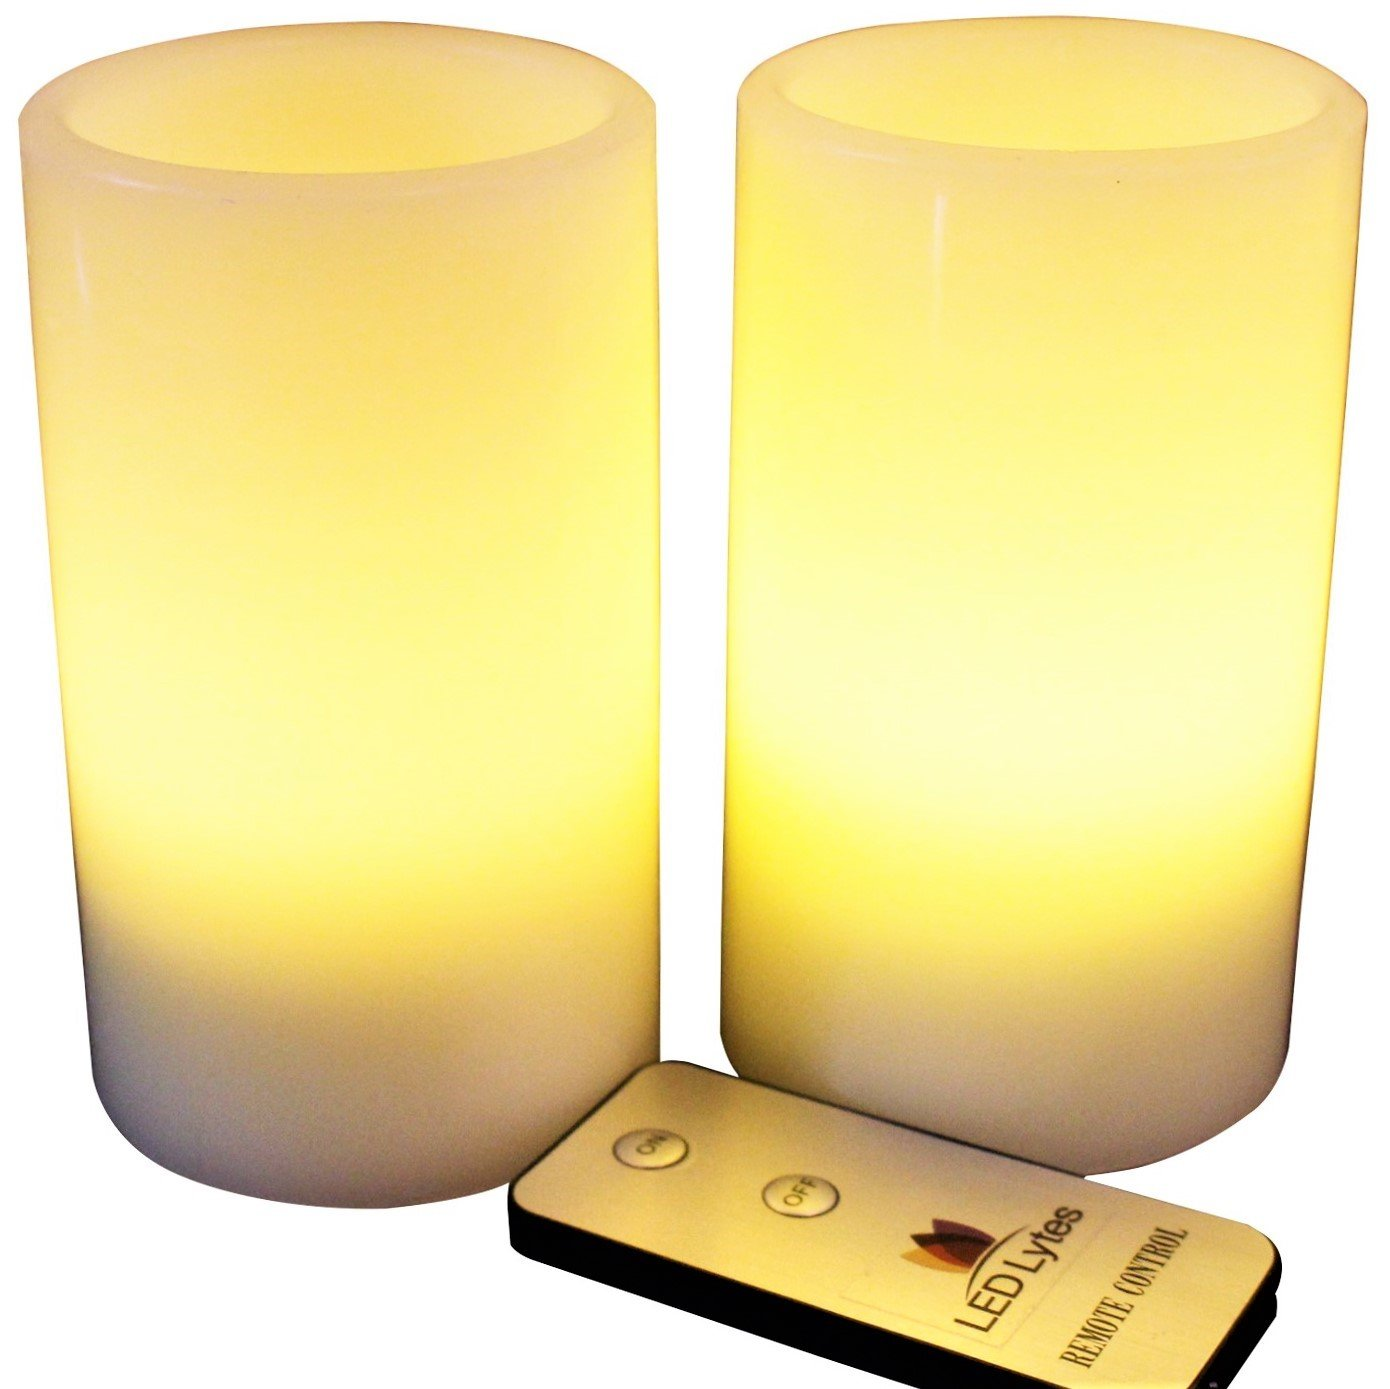 LED Lytes Flameless Candles Flickering - 2 Ivory Wax and Pale Yellow Flame Pillars Battery Operated with Remote for Parties, Weddings and Decorations